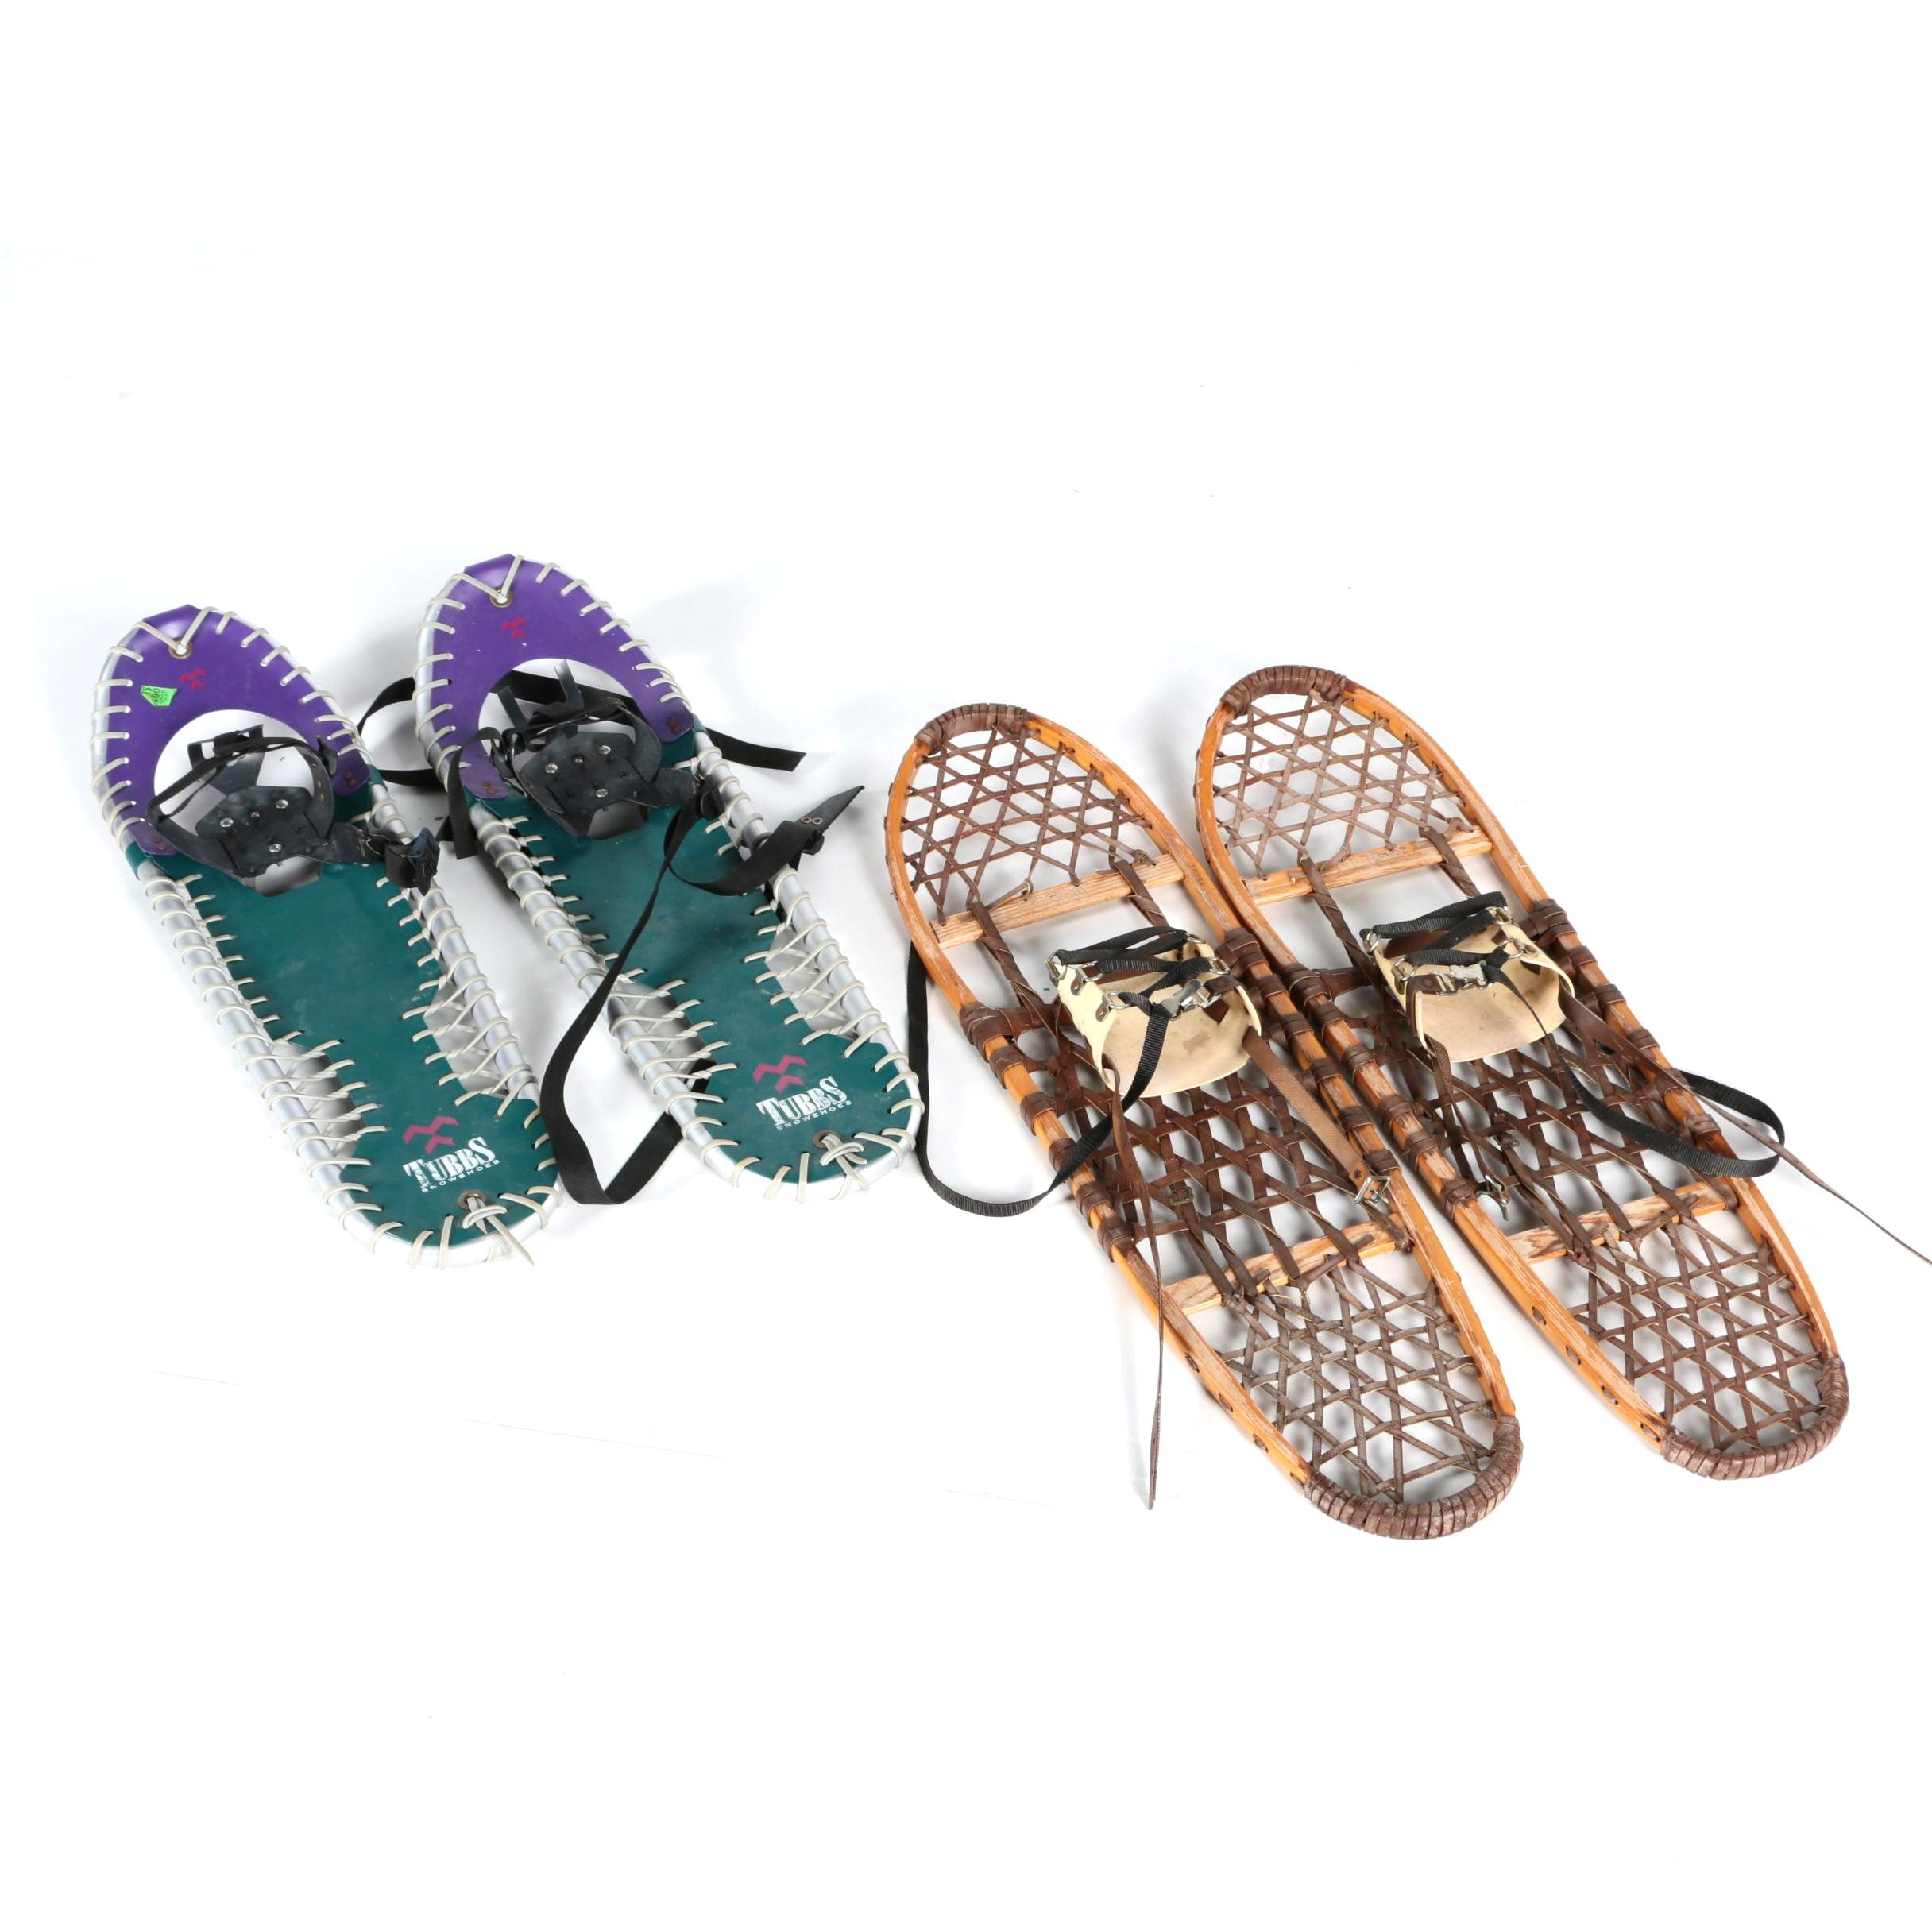 Two Pairs of Vintage Snowshoes